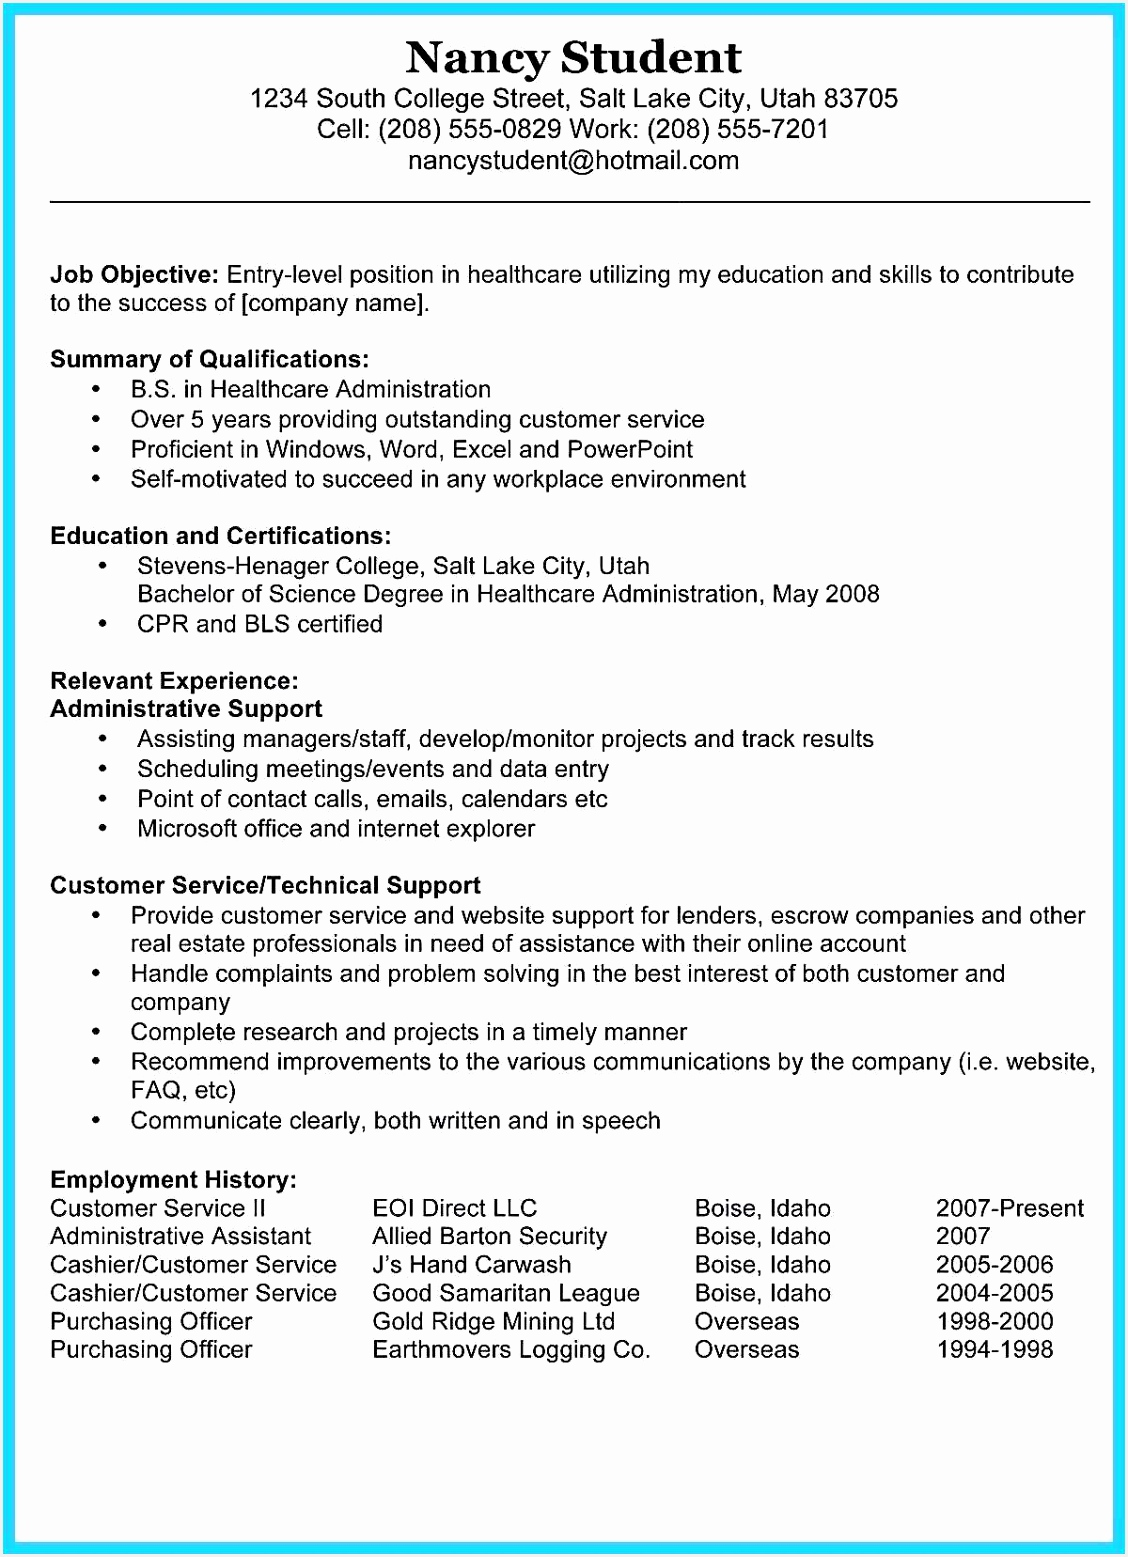 Free Sample Resume Yoga Valid Examples A Resume Fresh Resume Examples 0d Free Simple Resume 15571128drrgt